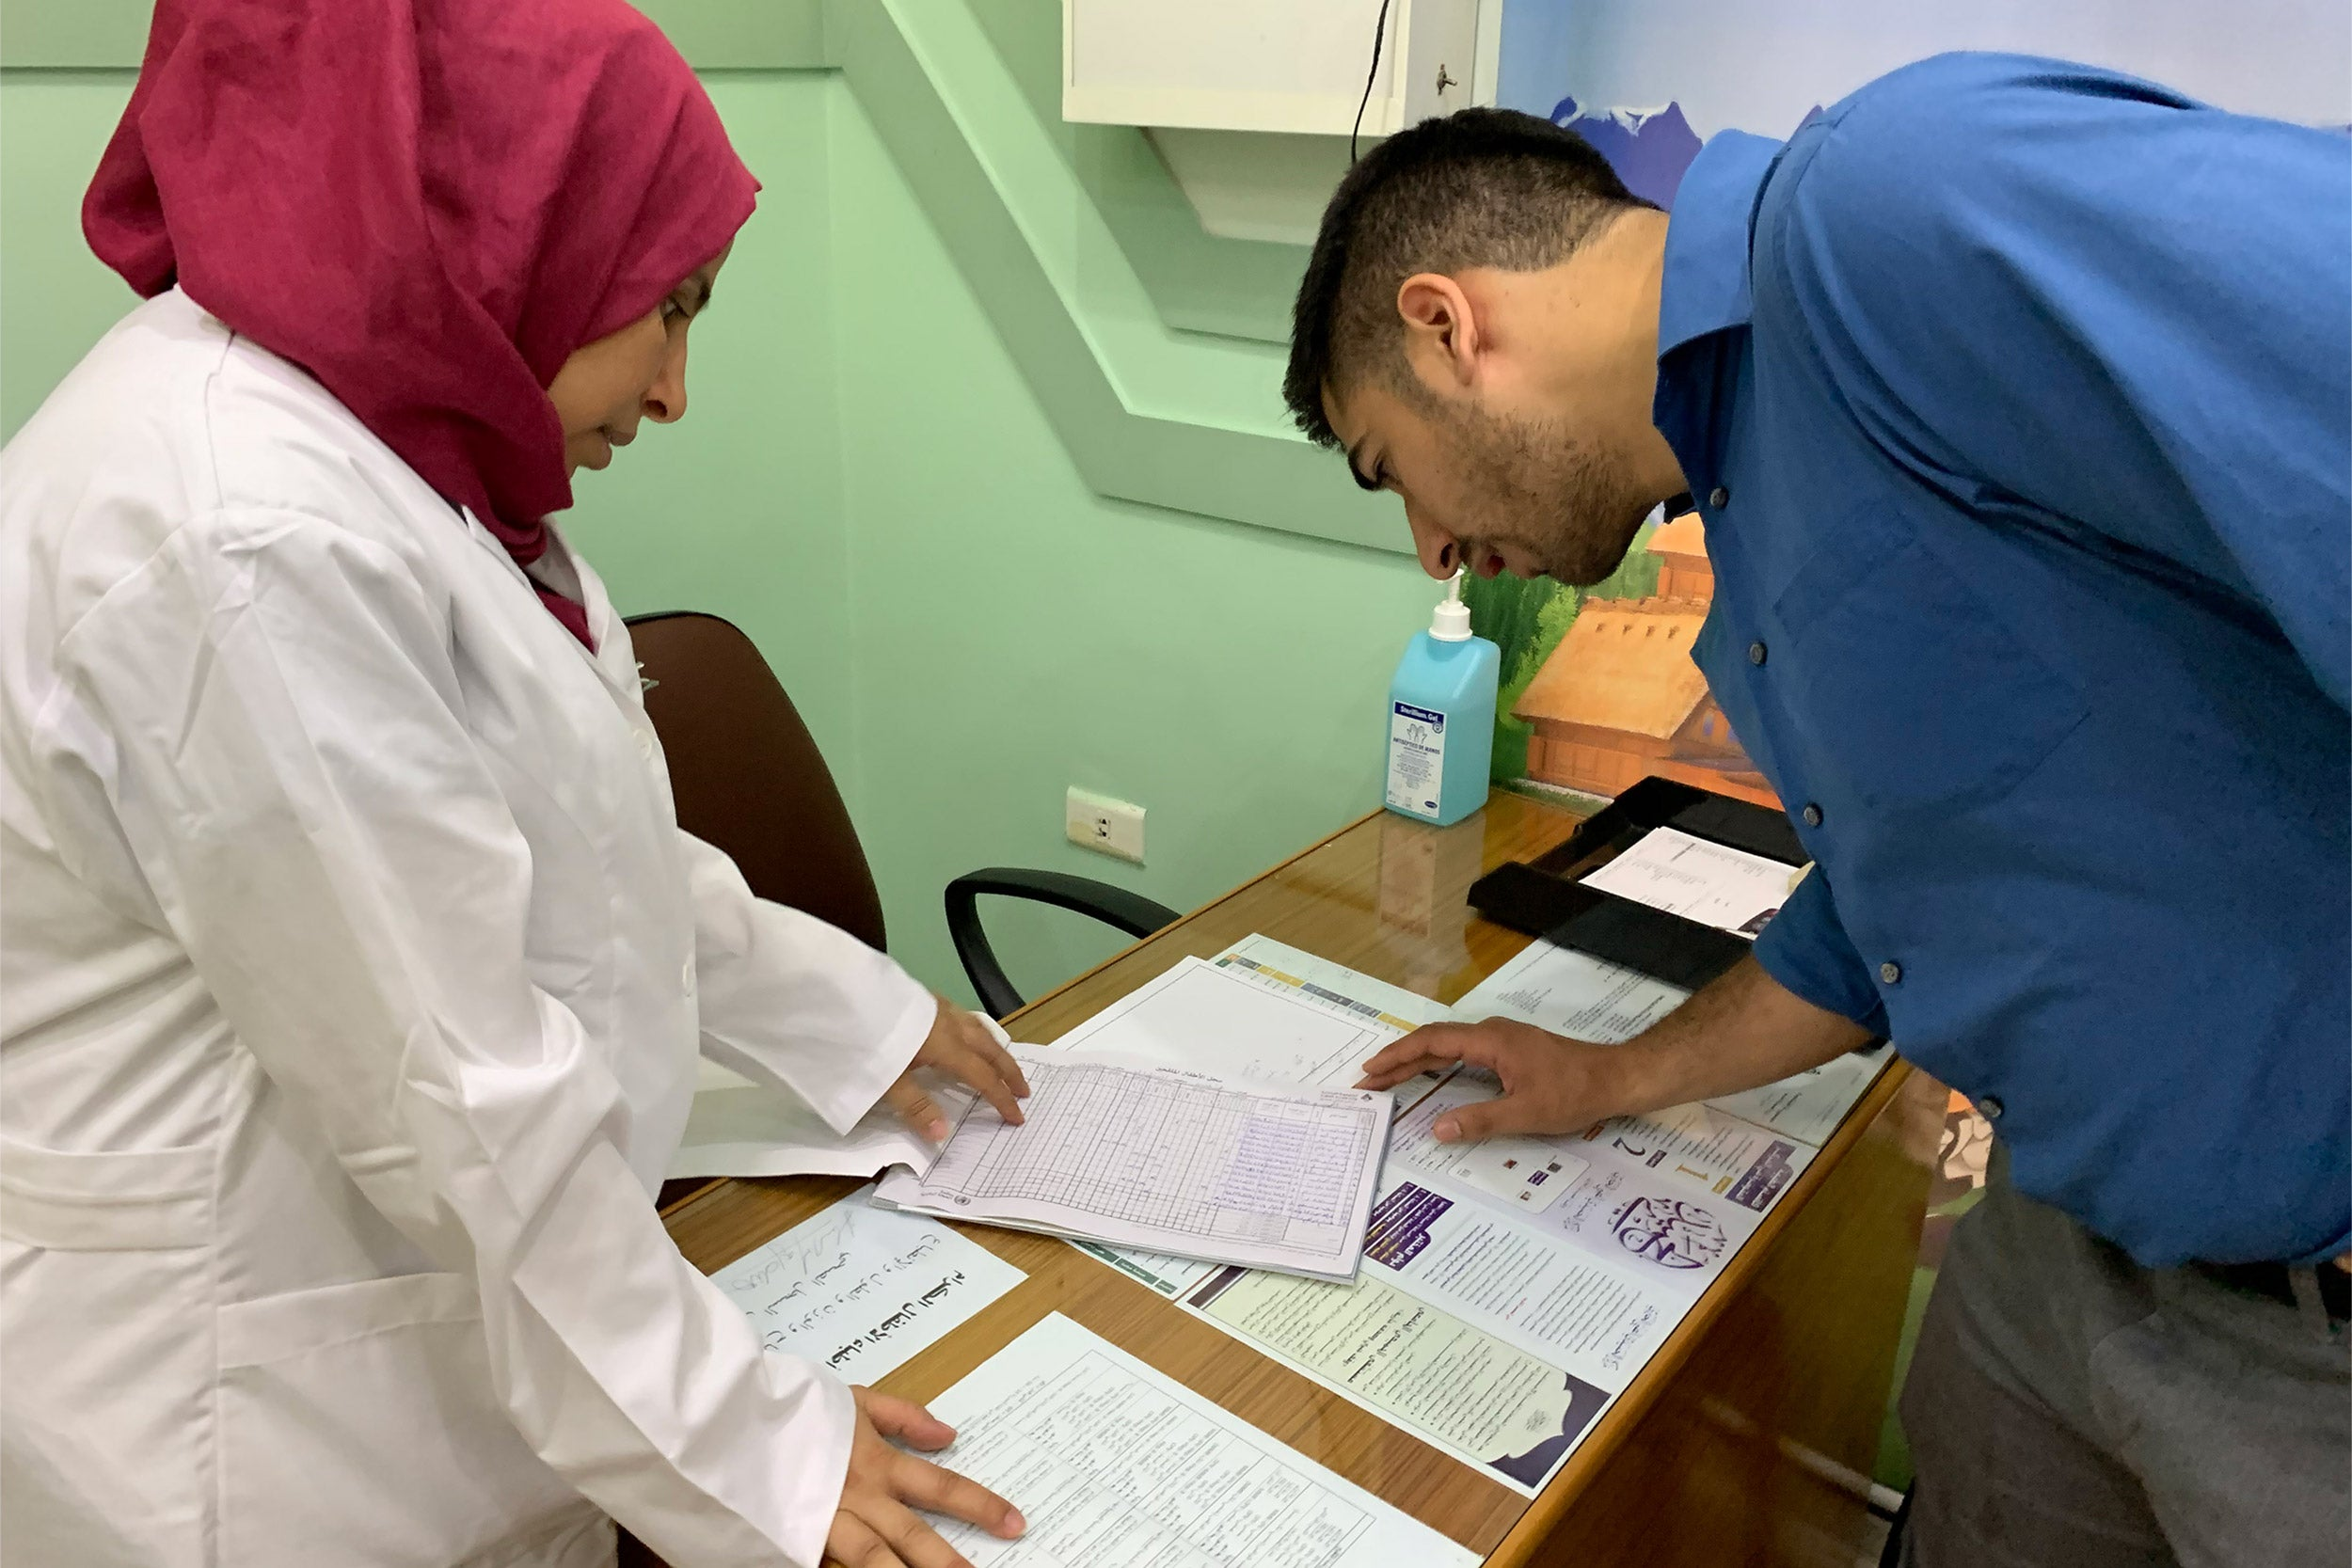 Inspecting medical documents in Tripoli.